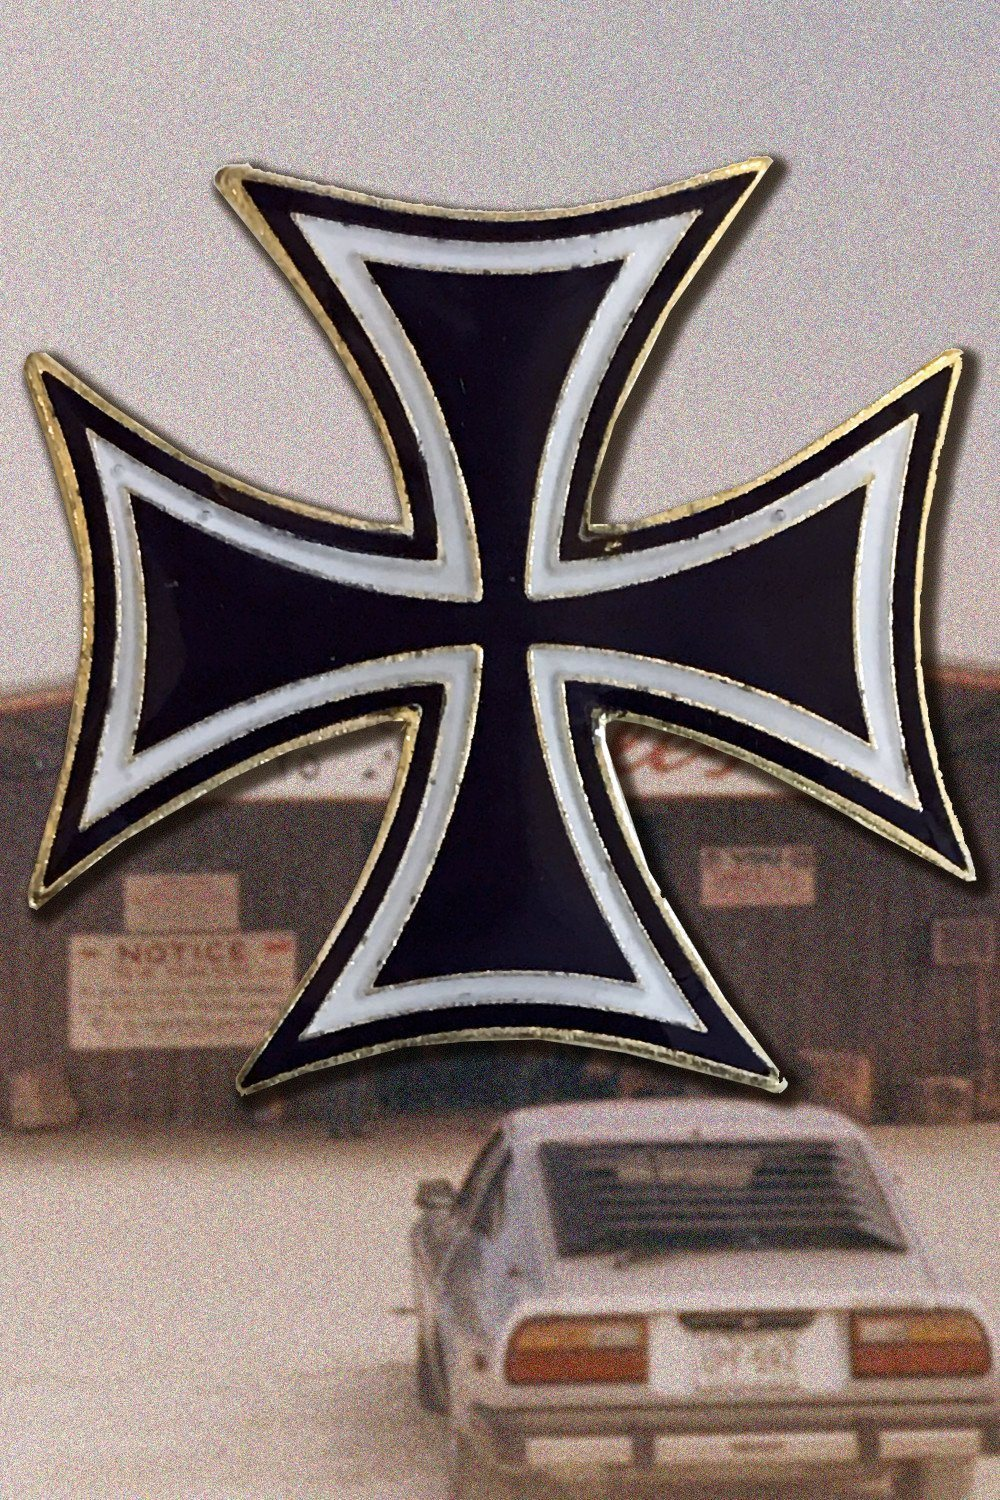 Iron Cross Lapel Pin, Accessories, BACKBITE, BACKBITE